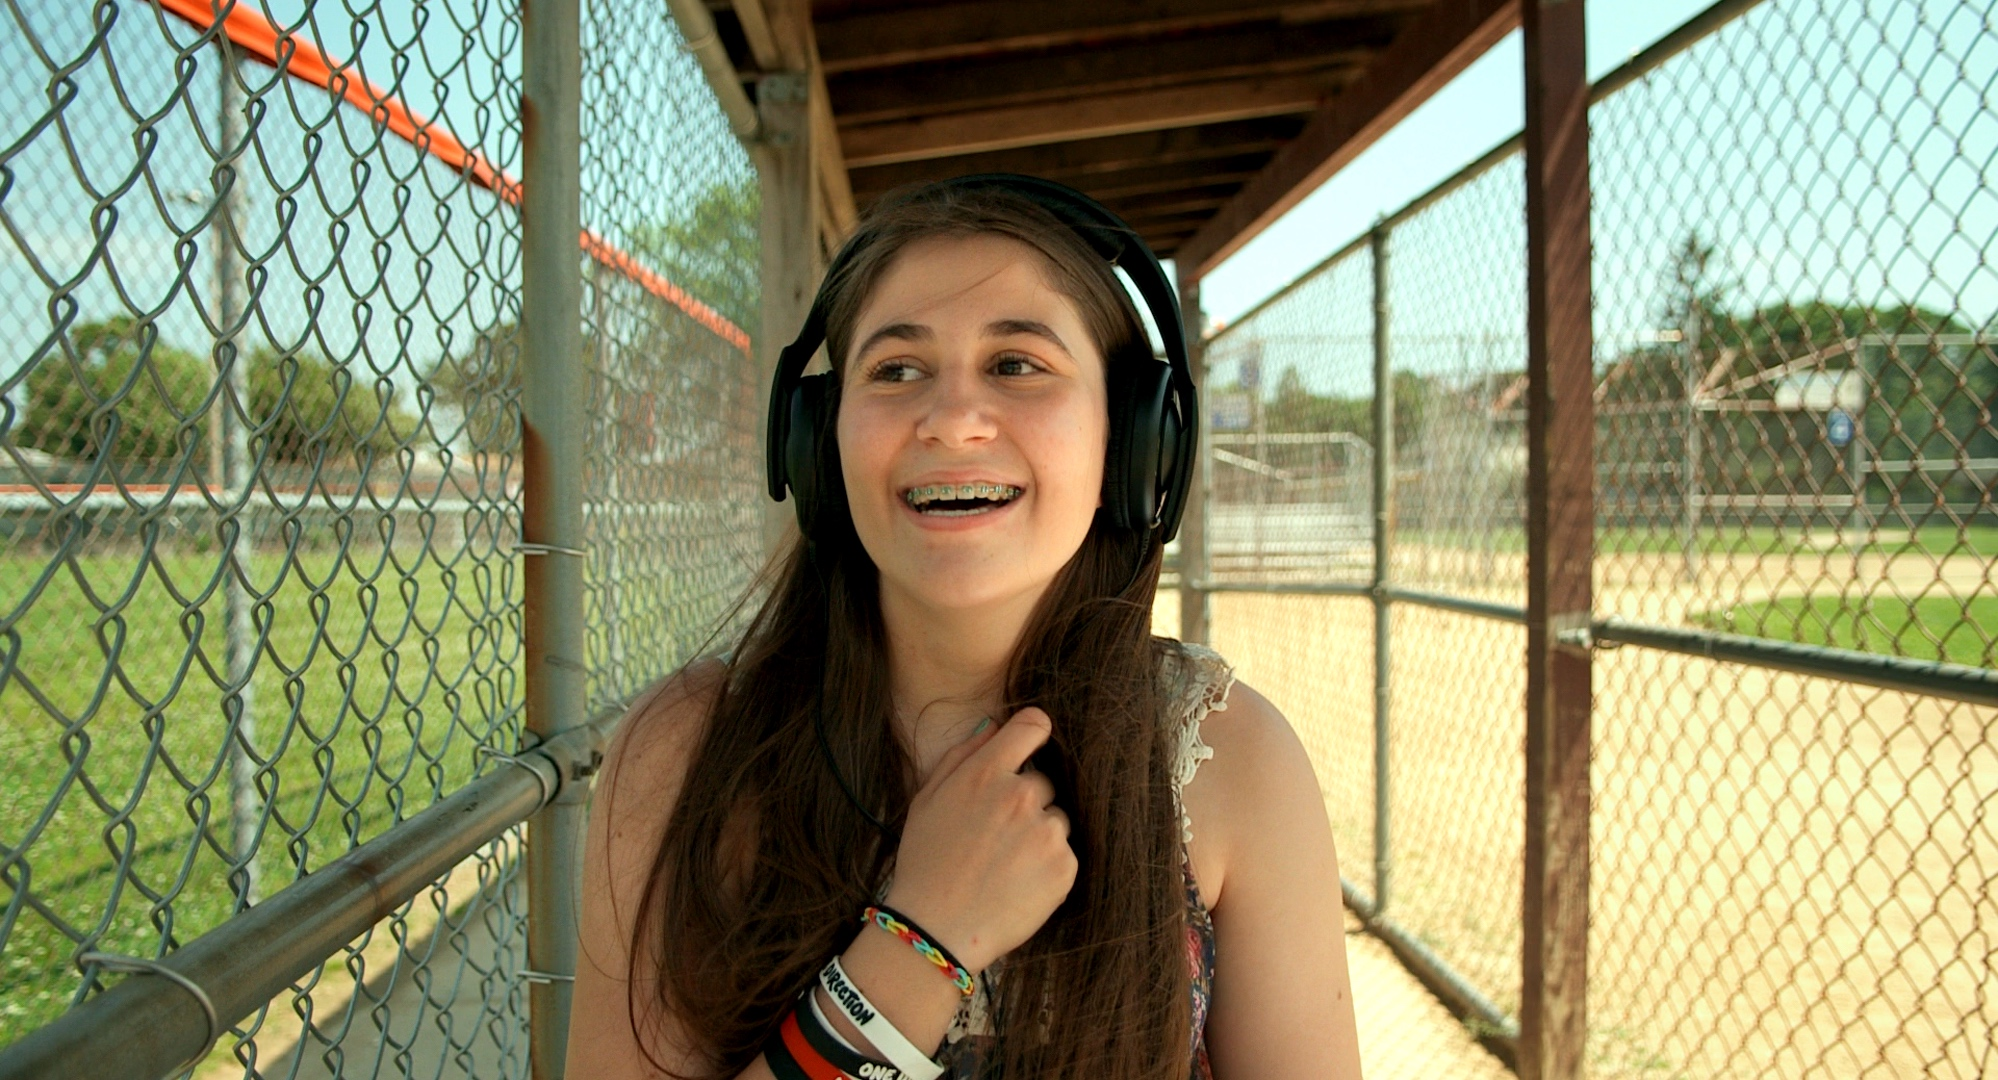 """Still from """"I Used To Be Normal"""" of a teenage girl sitting in a baseball dugout with headphones on listening to music."""